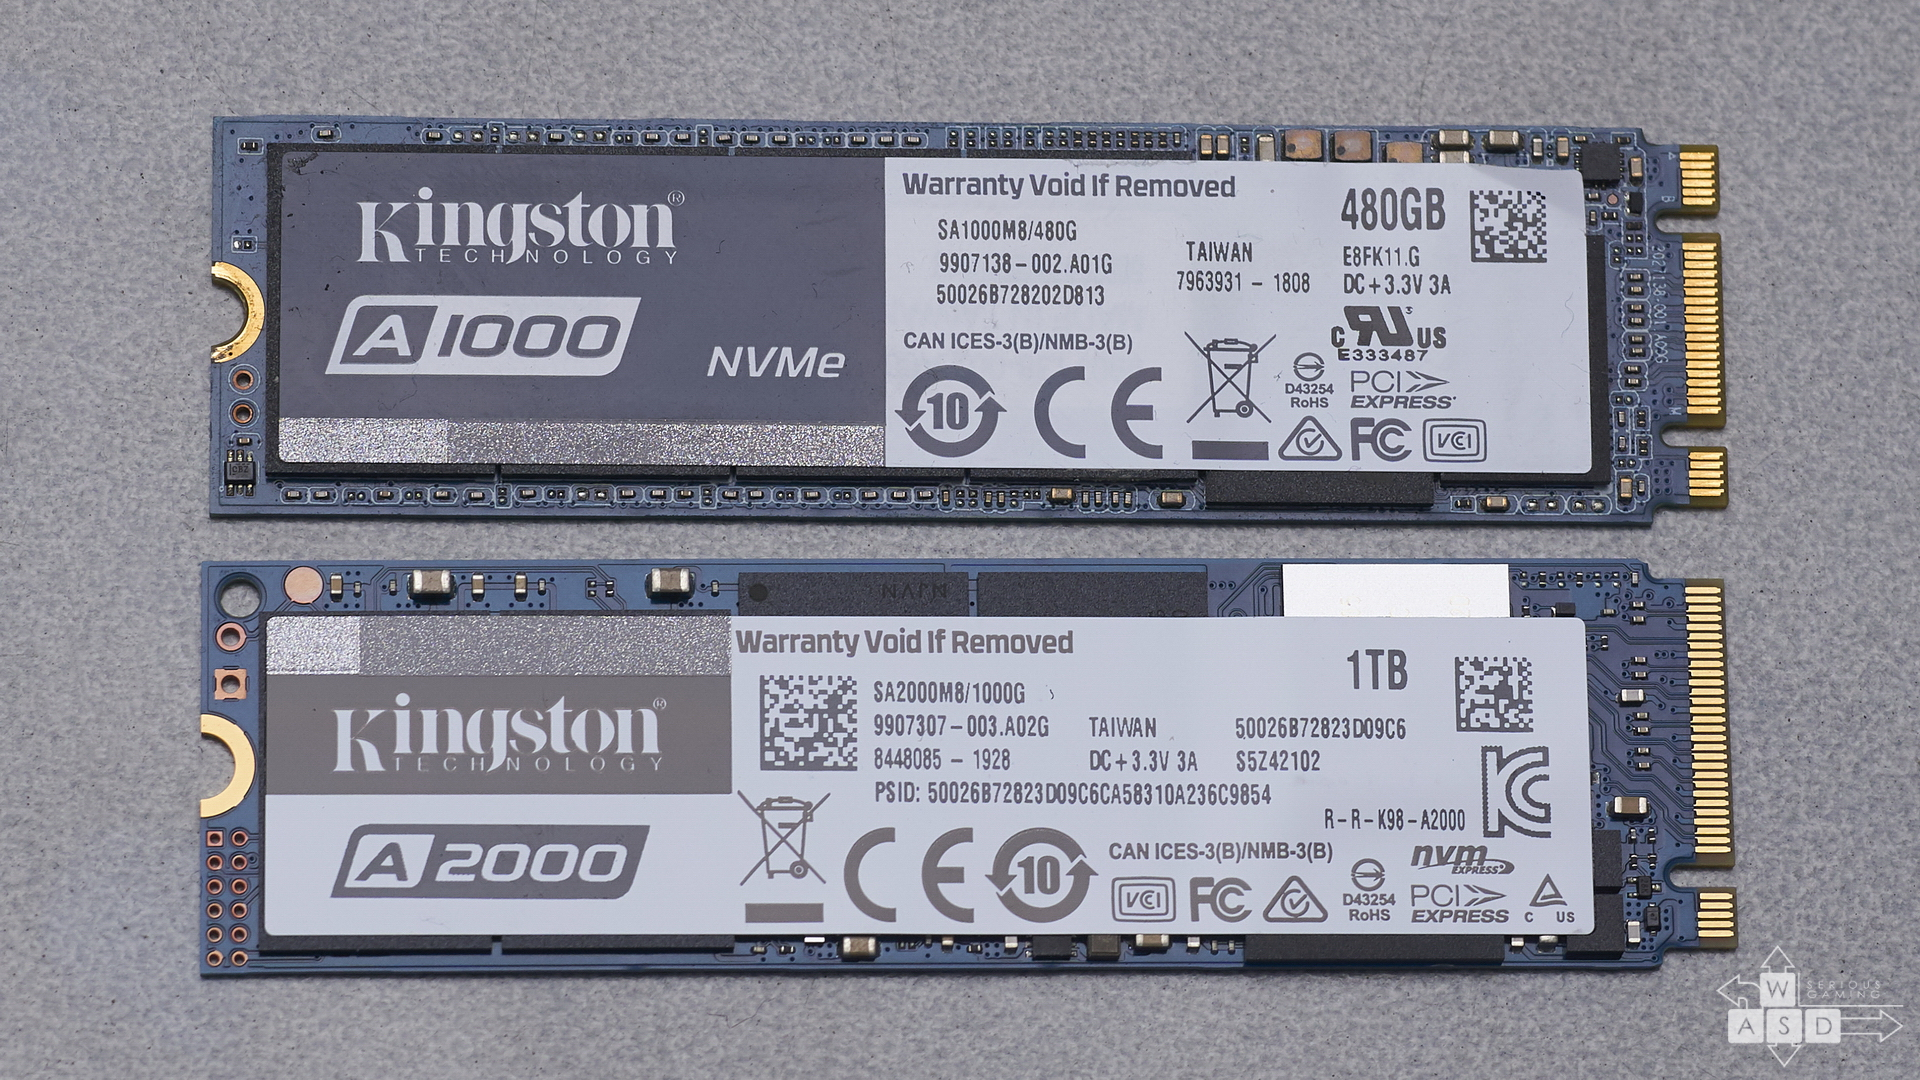 Kingston A2000 1TB review | WASD